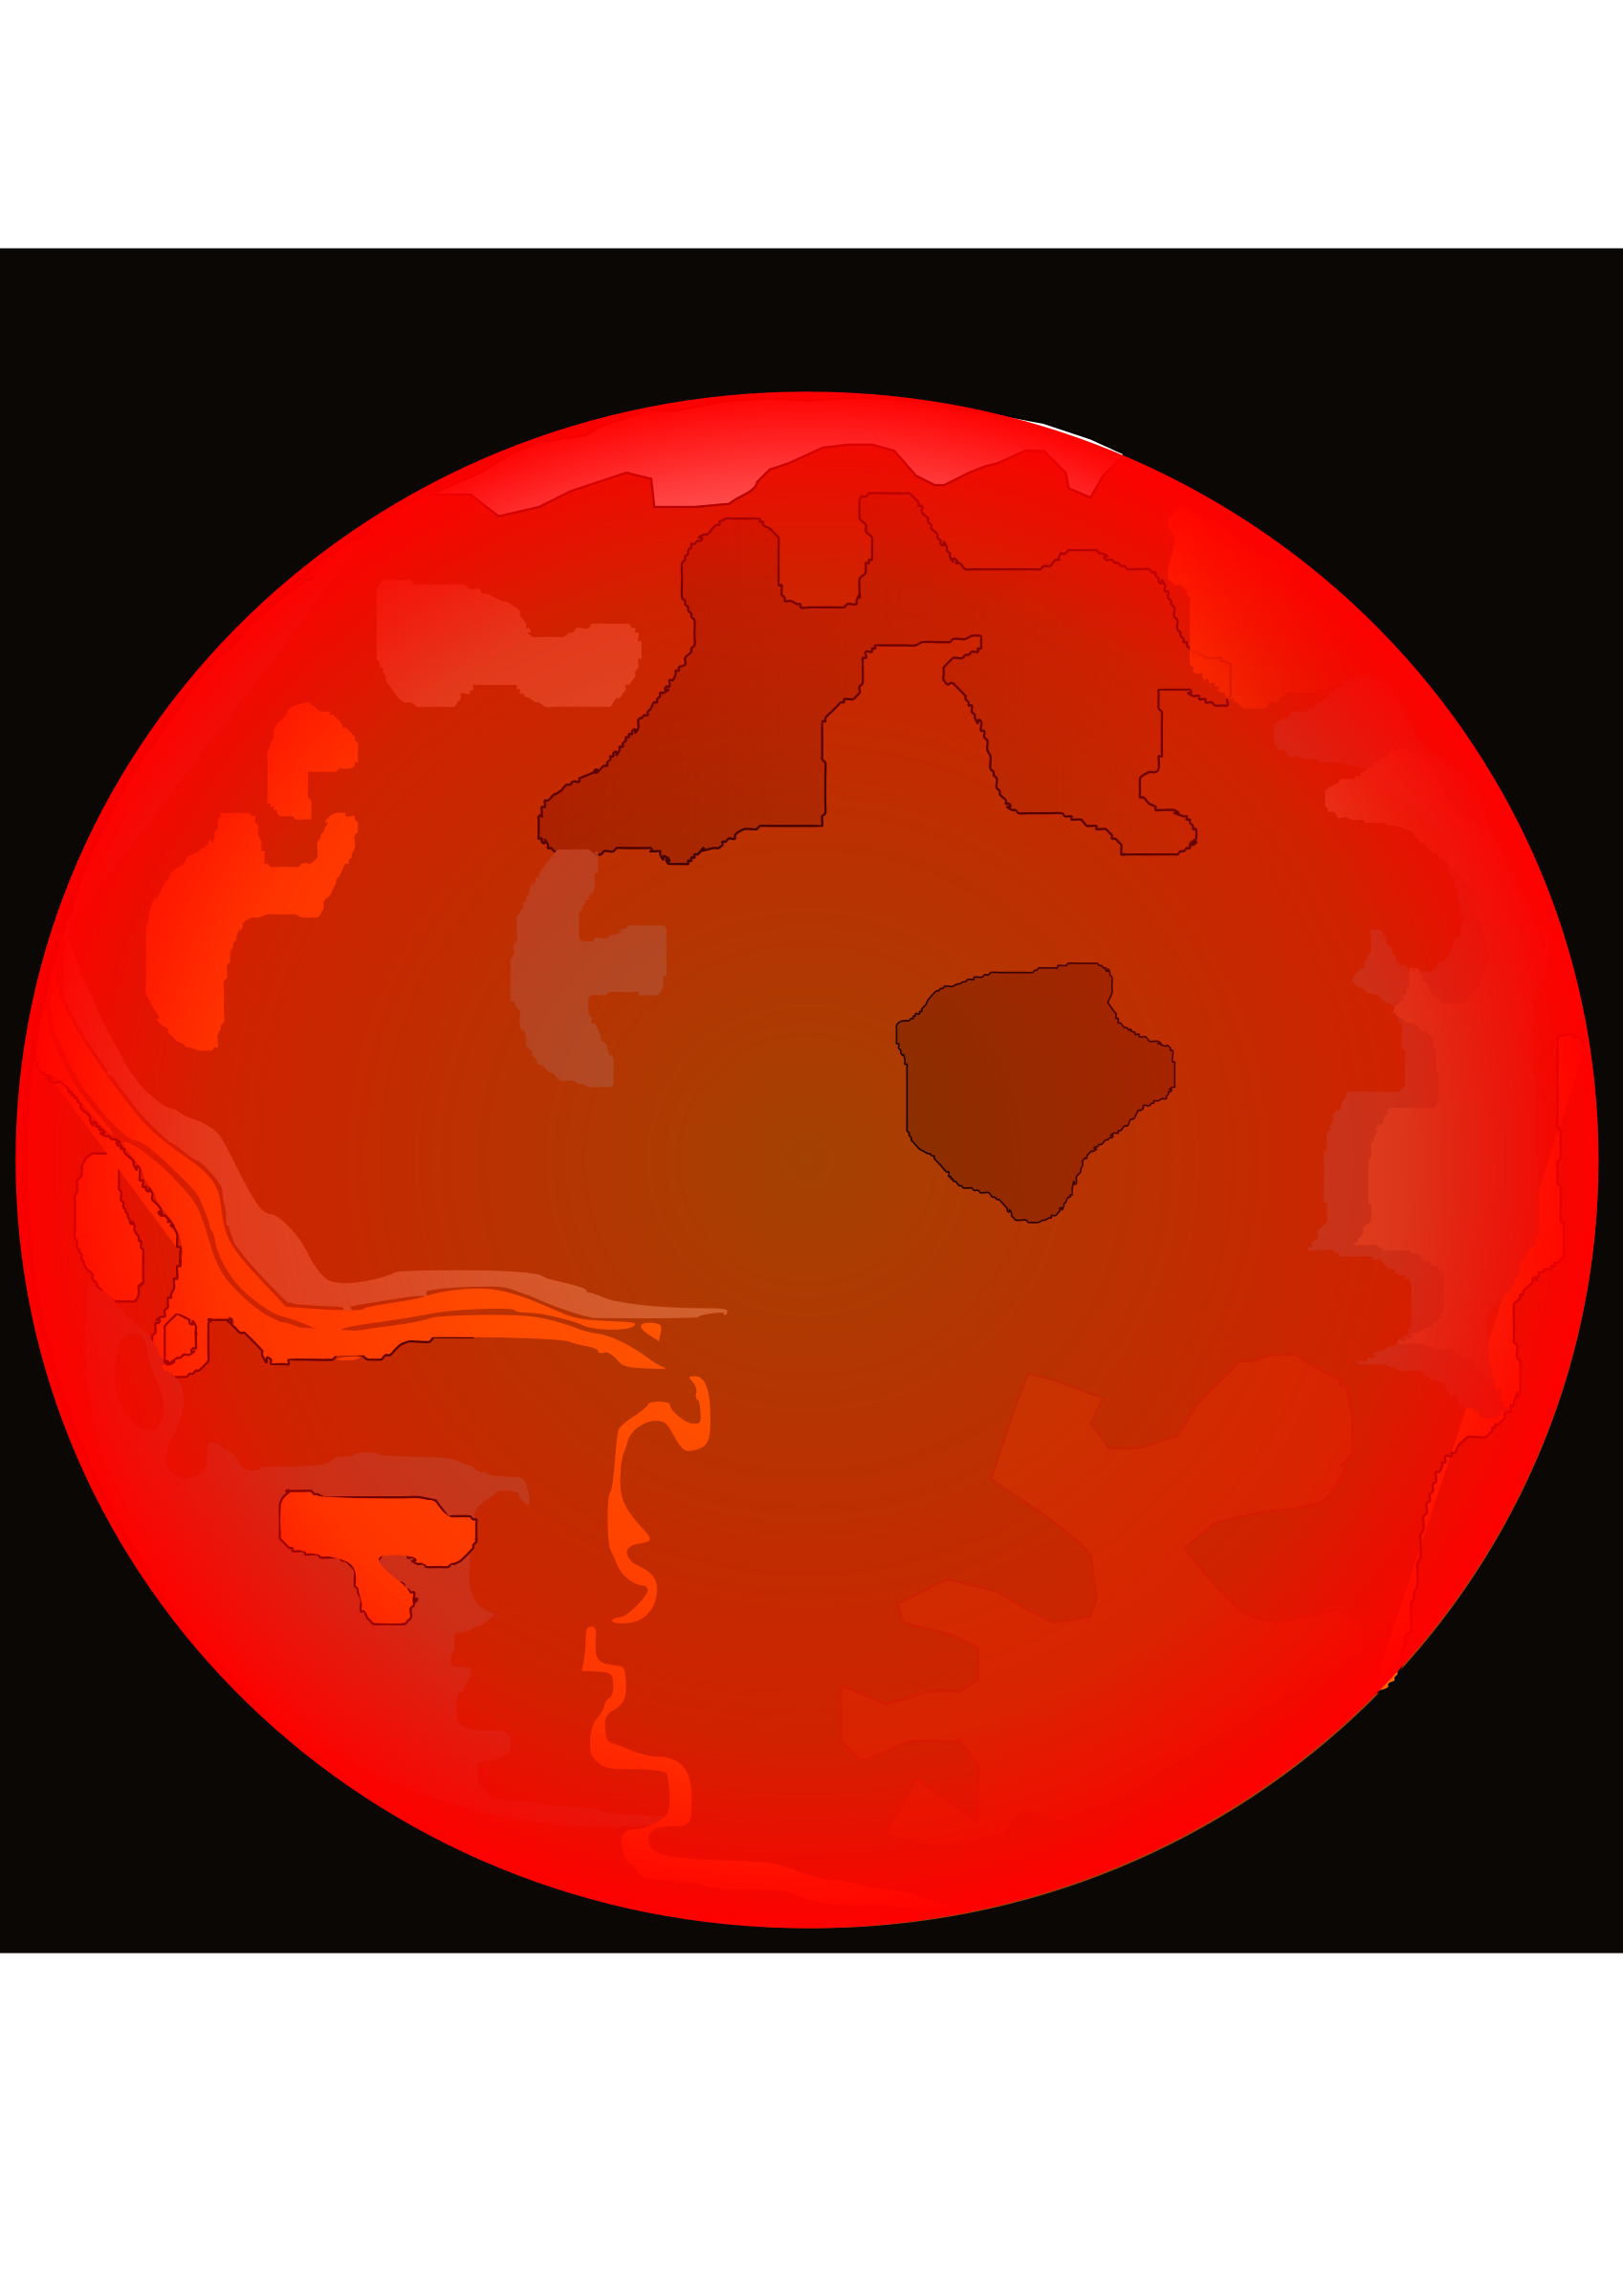 Planet clipart red moon. Icons png free and